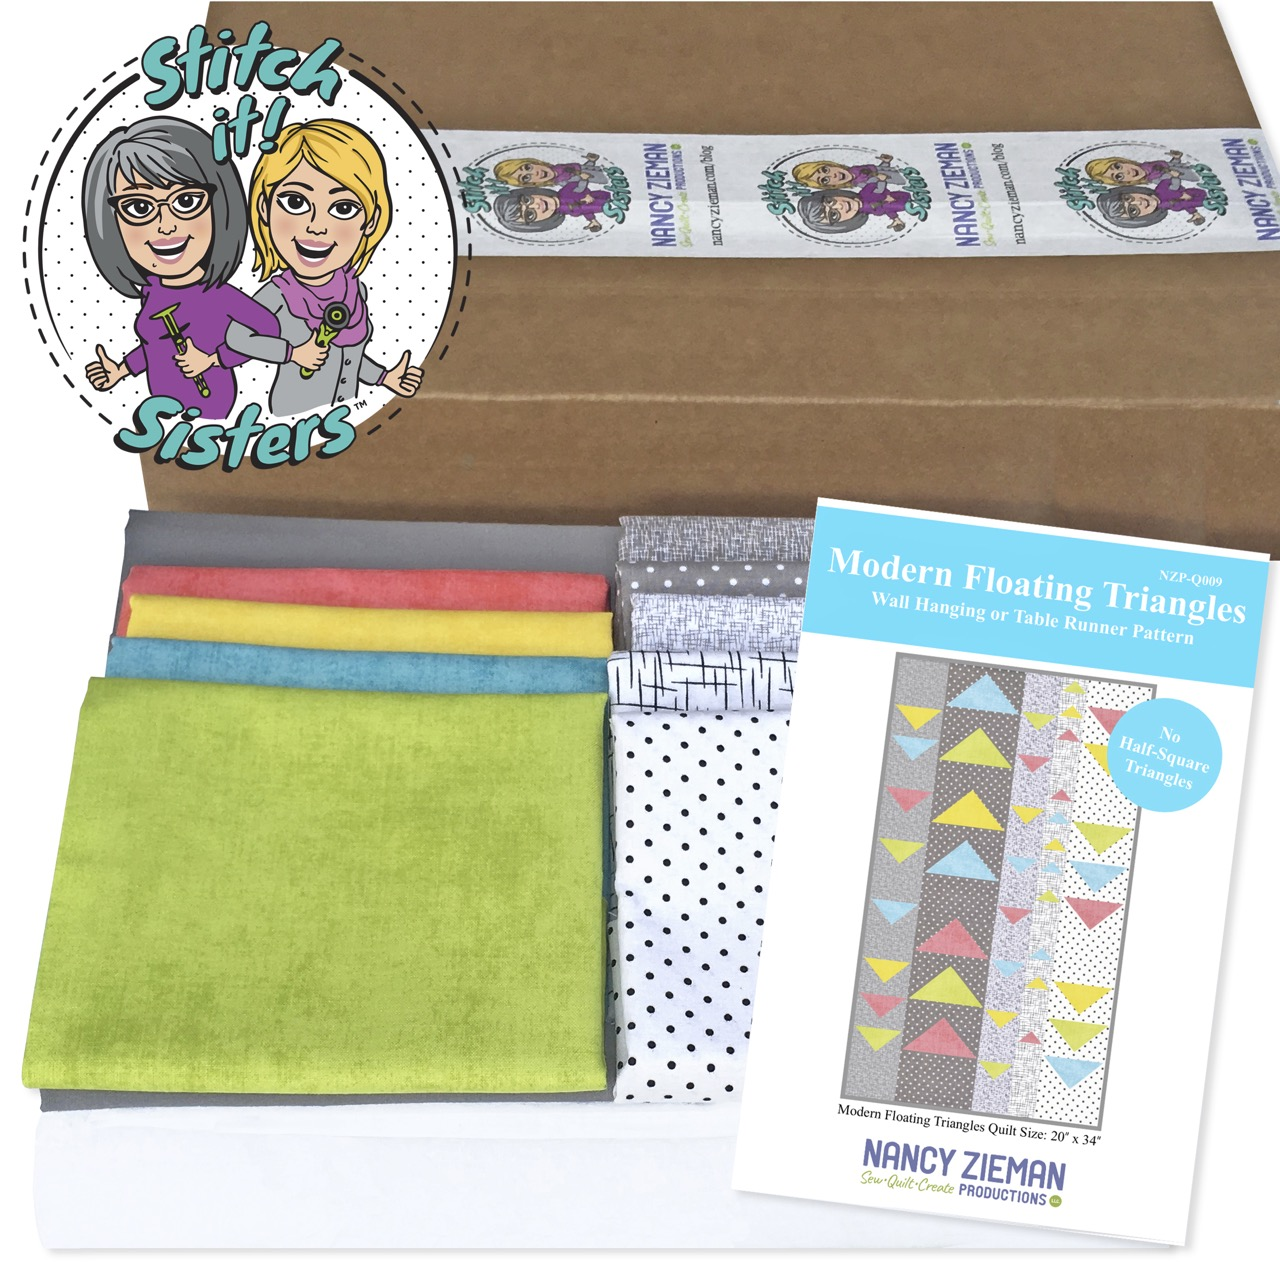 SISQ009 Modern Floating Triangles Bundle Box as seen on Stitch it! Sisters